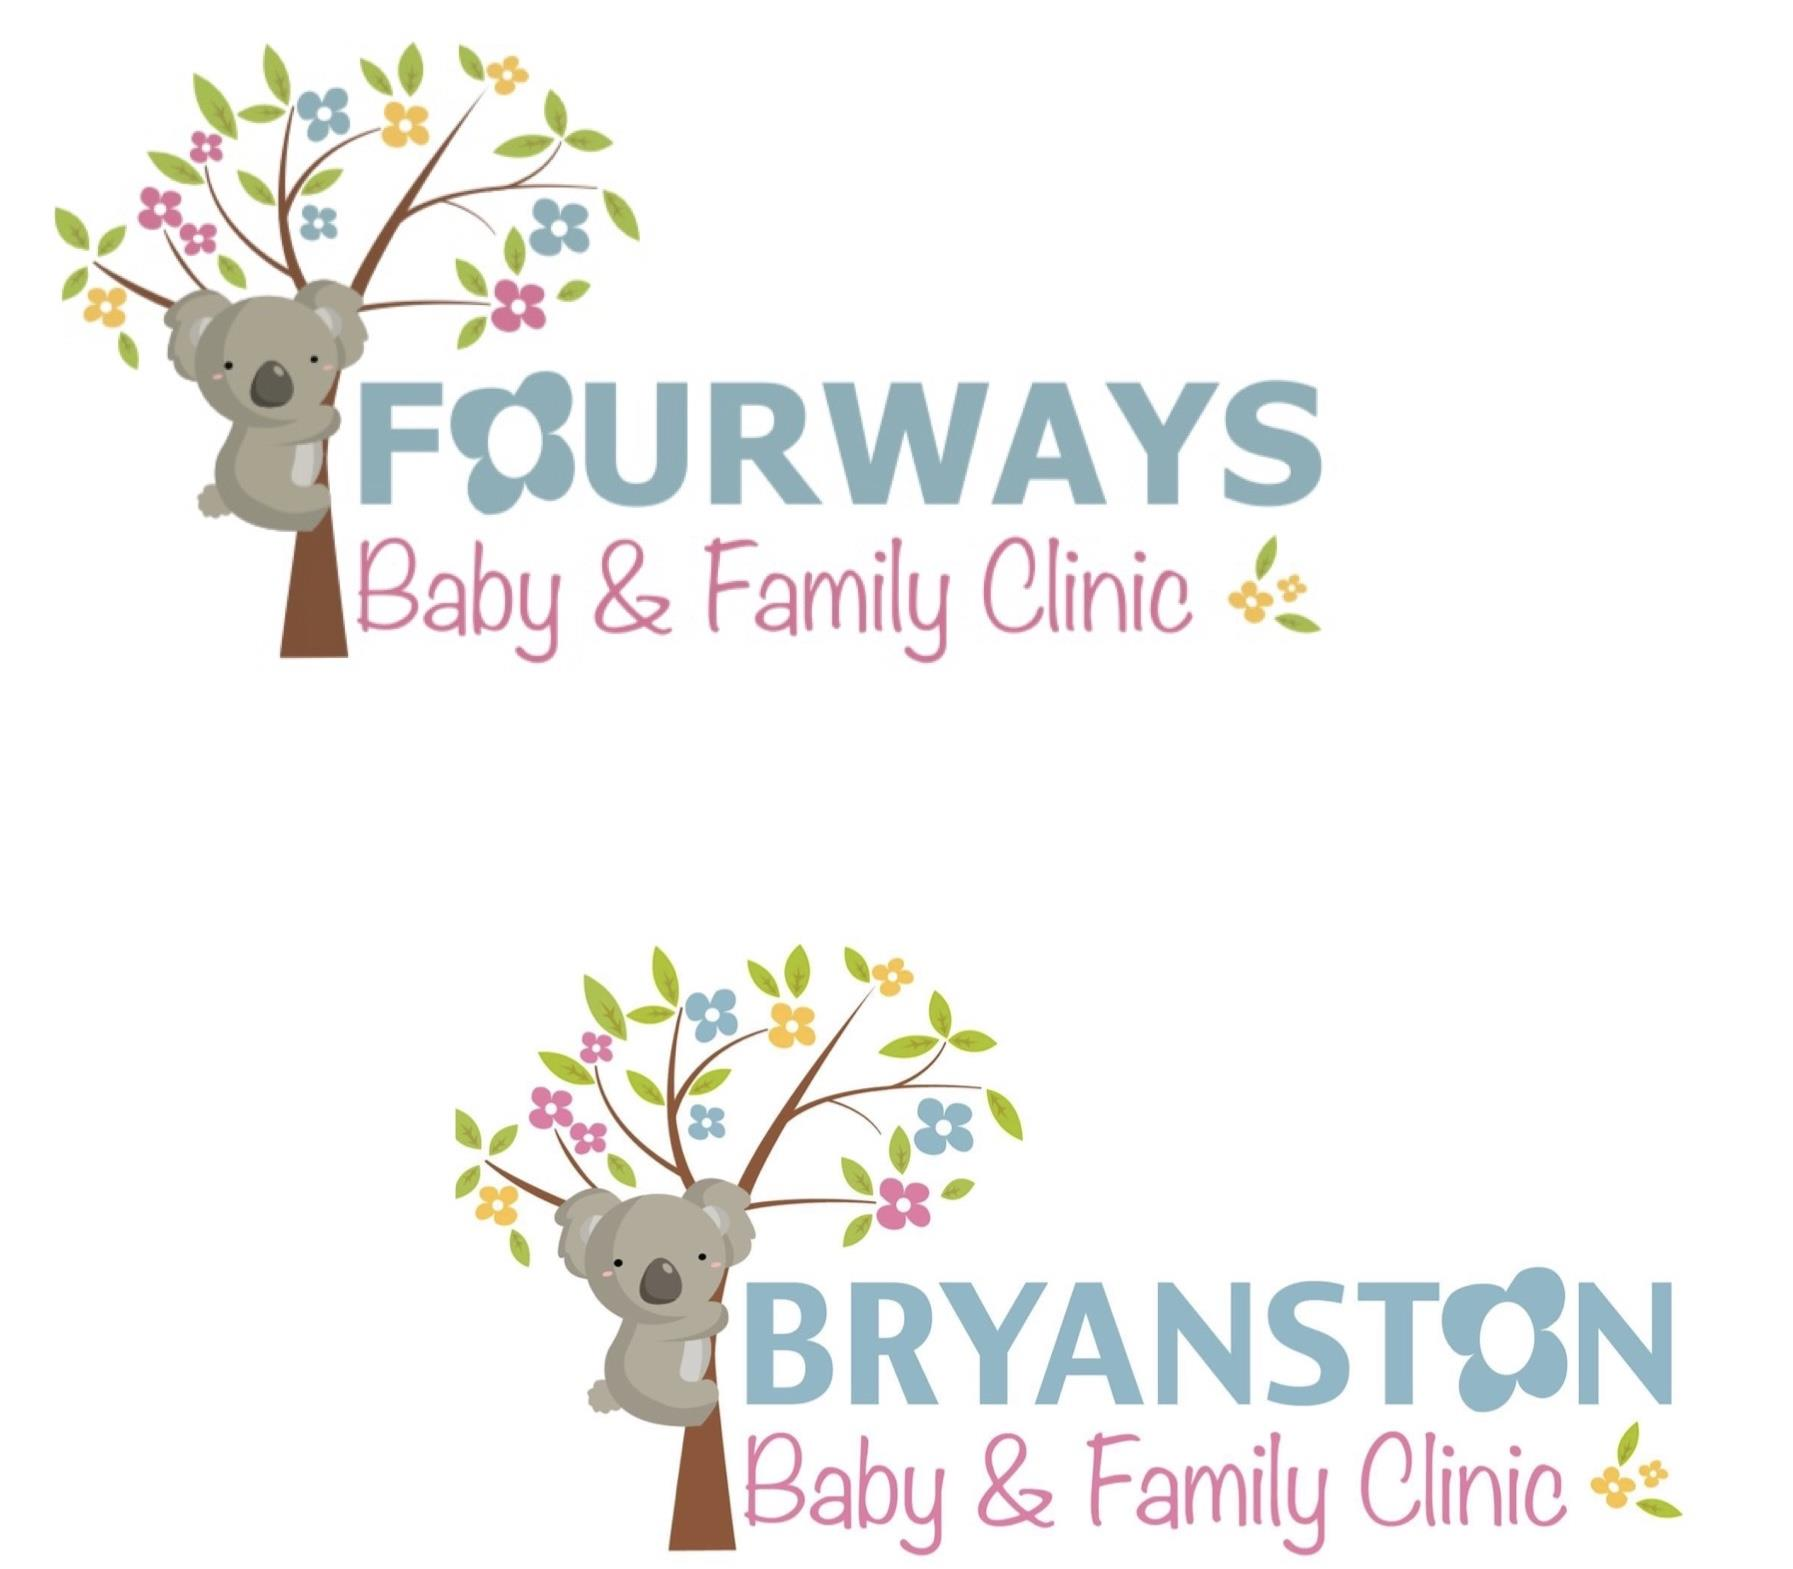 Bryanston and Fourways  Baby And Family Clinics